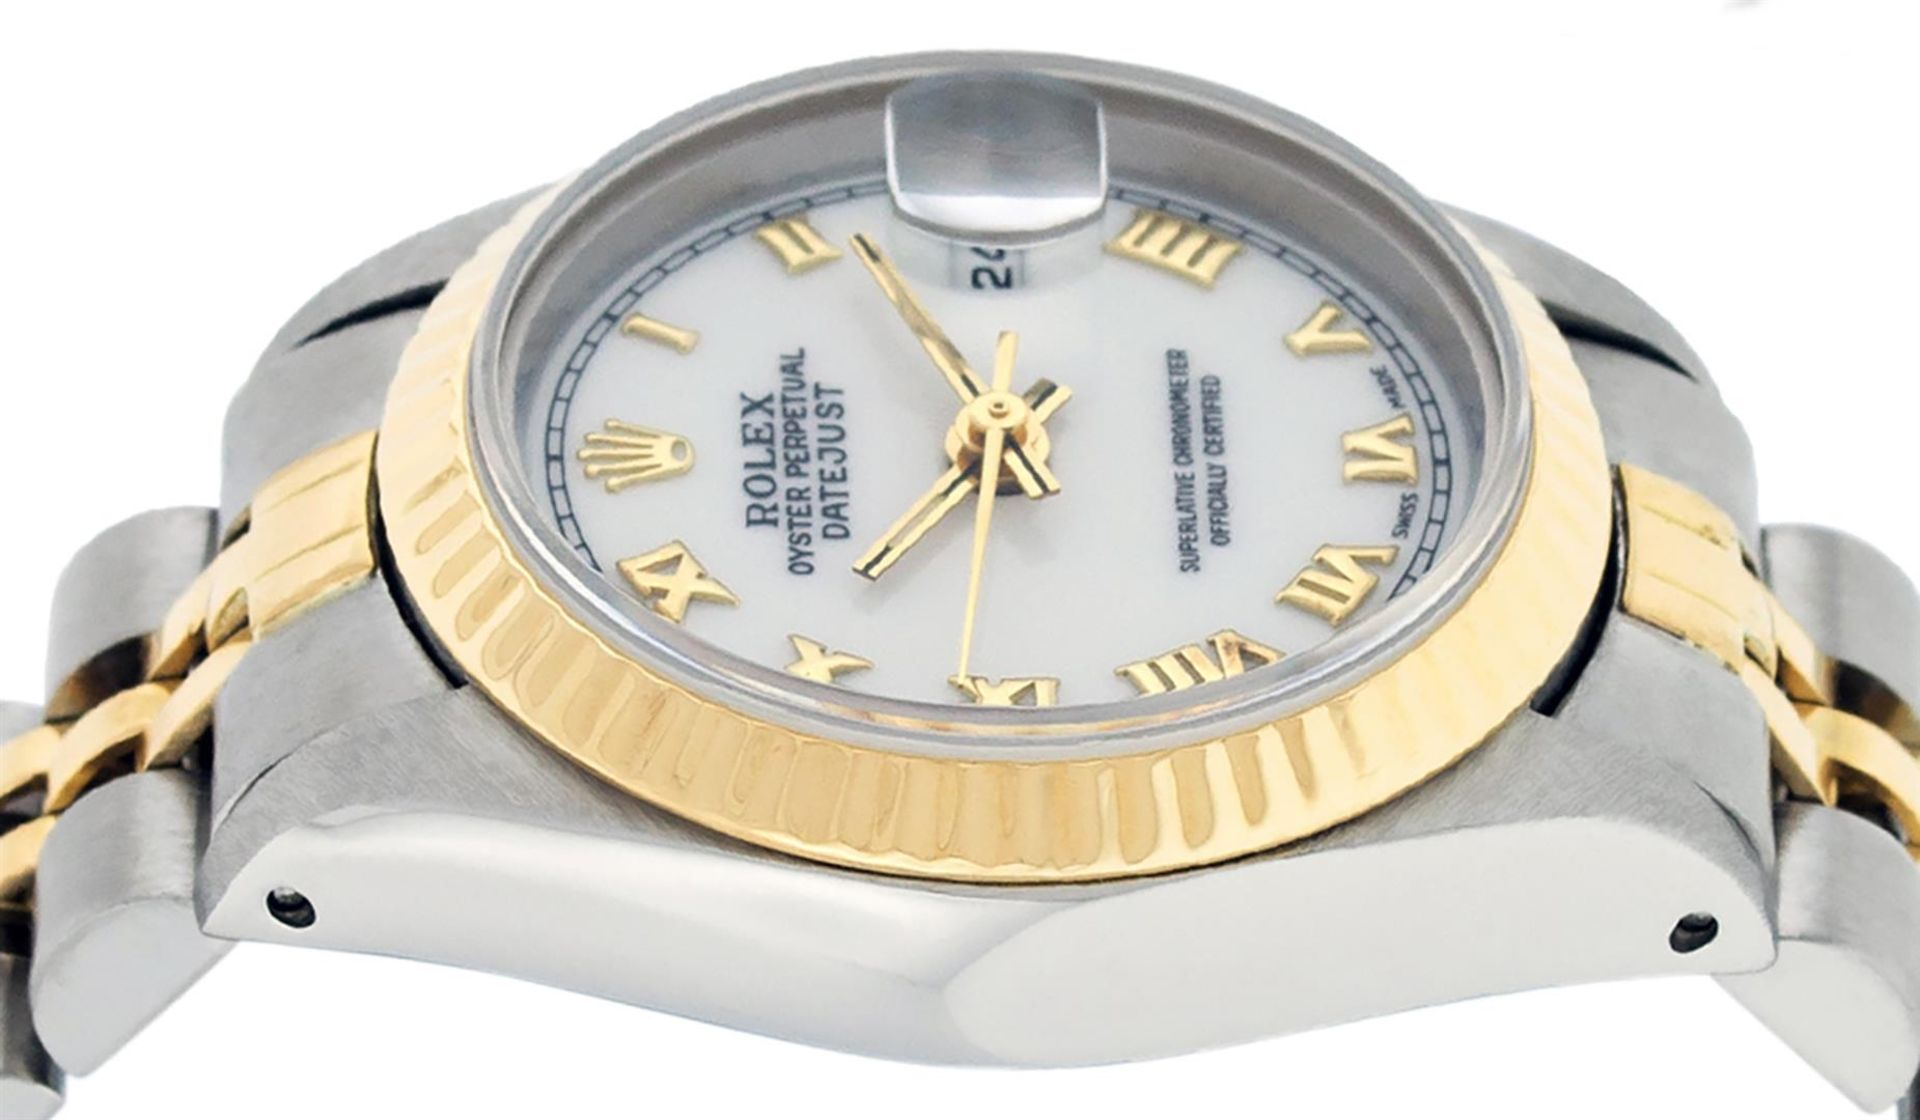 Rolex Ladies 2 Tone White Roman 26MM Datejust Wristwatch - Image 8 of 8